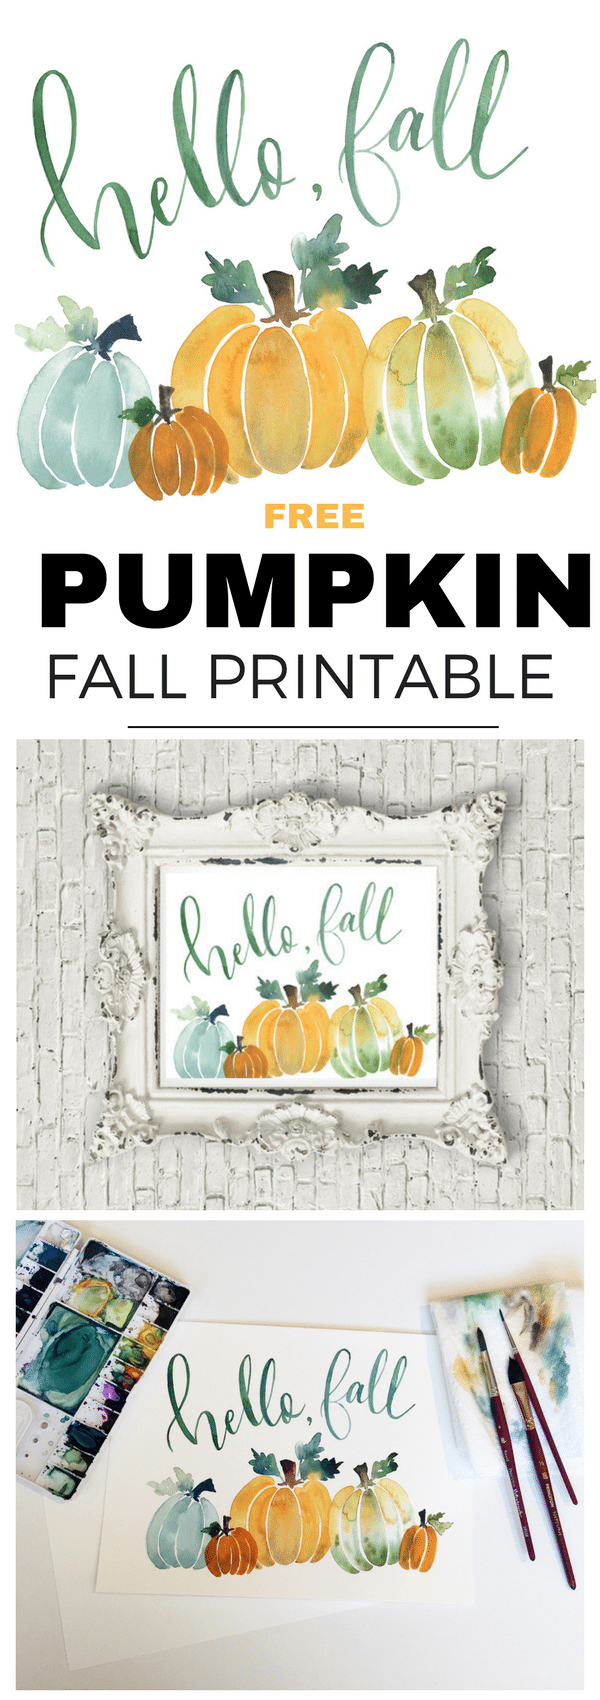 Free Hello Fall Pumpkin Printable in pretty watercolor. Made from a Courtney Bray original and downloadable on Tinselbox.com.